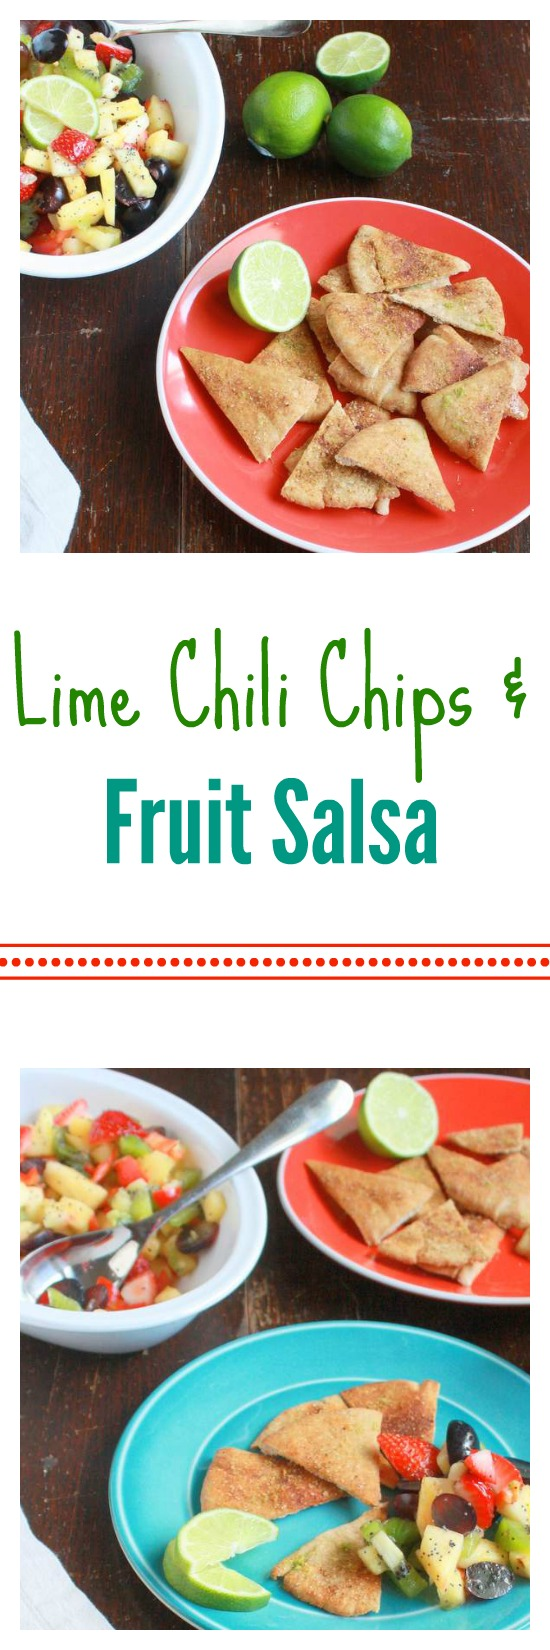 Chili Lime Chips & Fresh Fruit Salsa | TeaspoonOfSpice.com